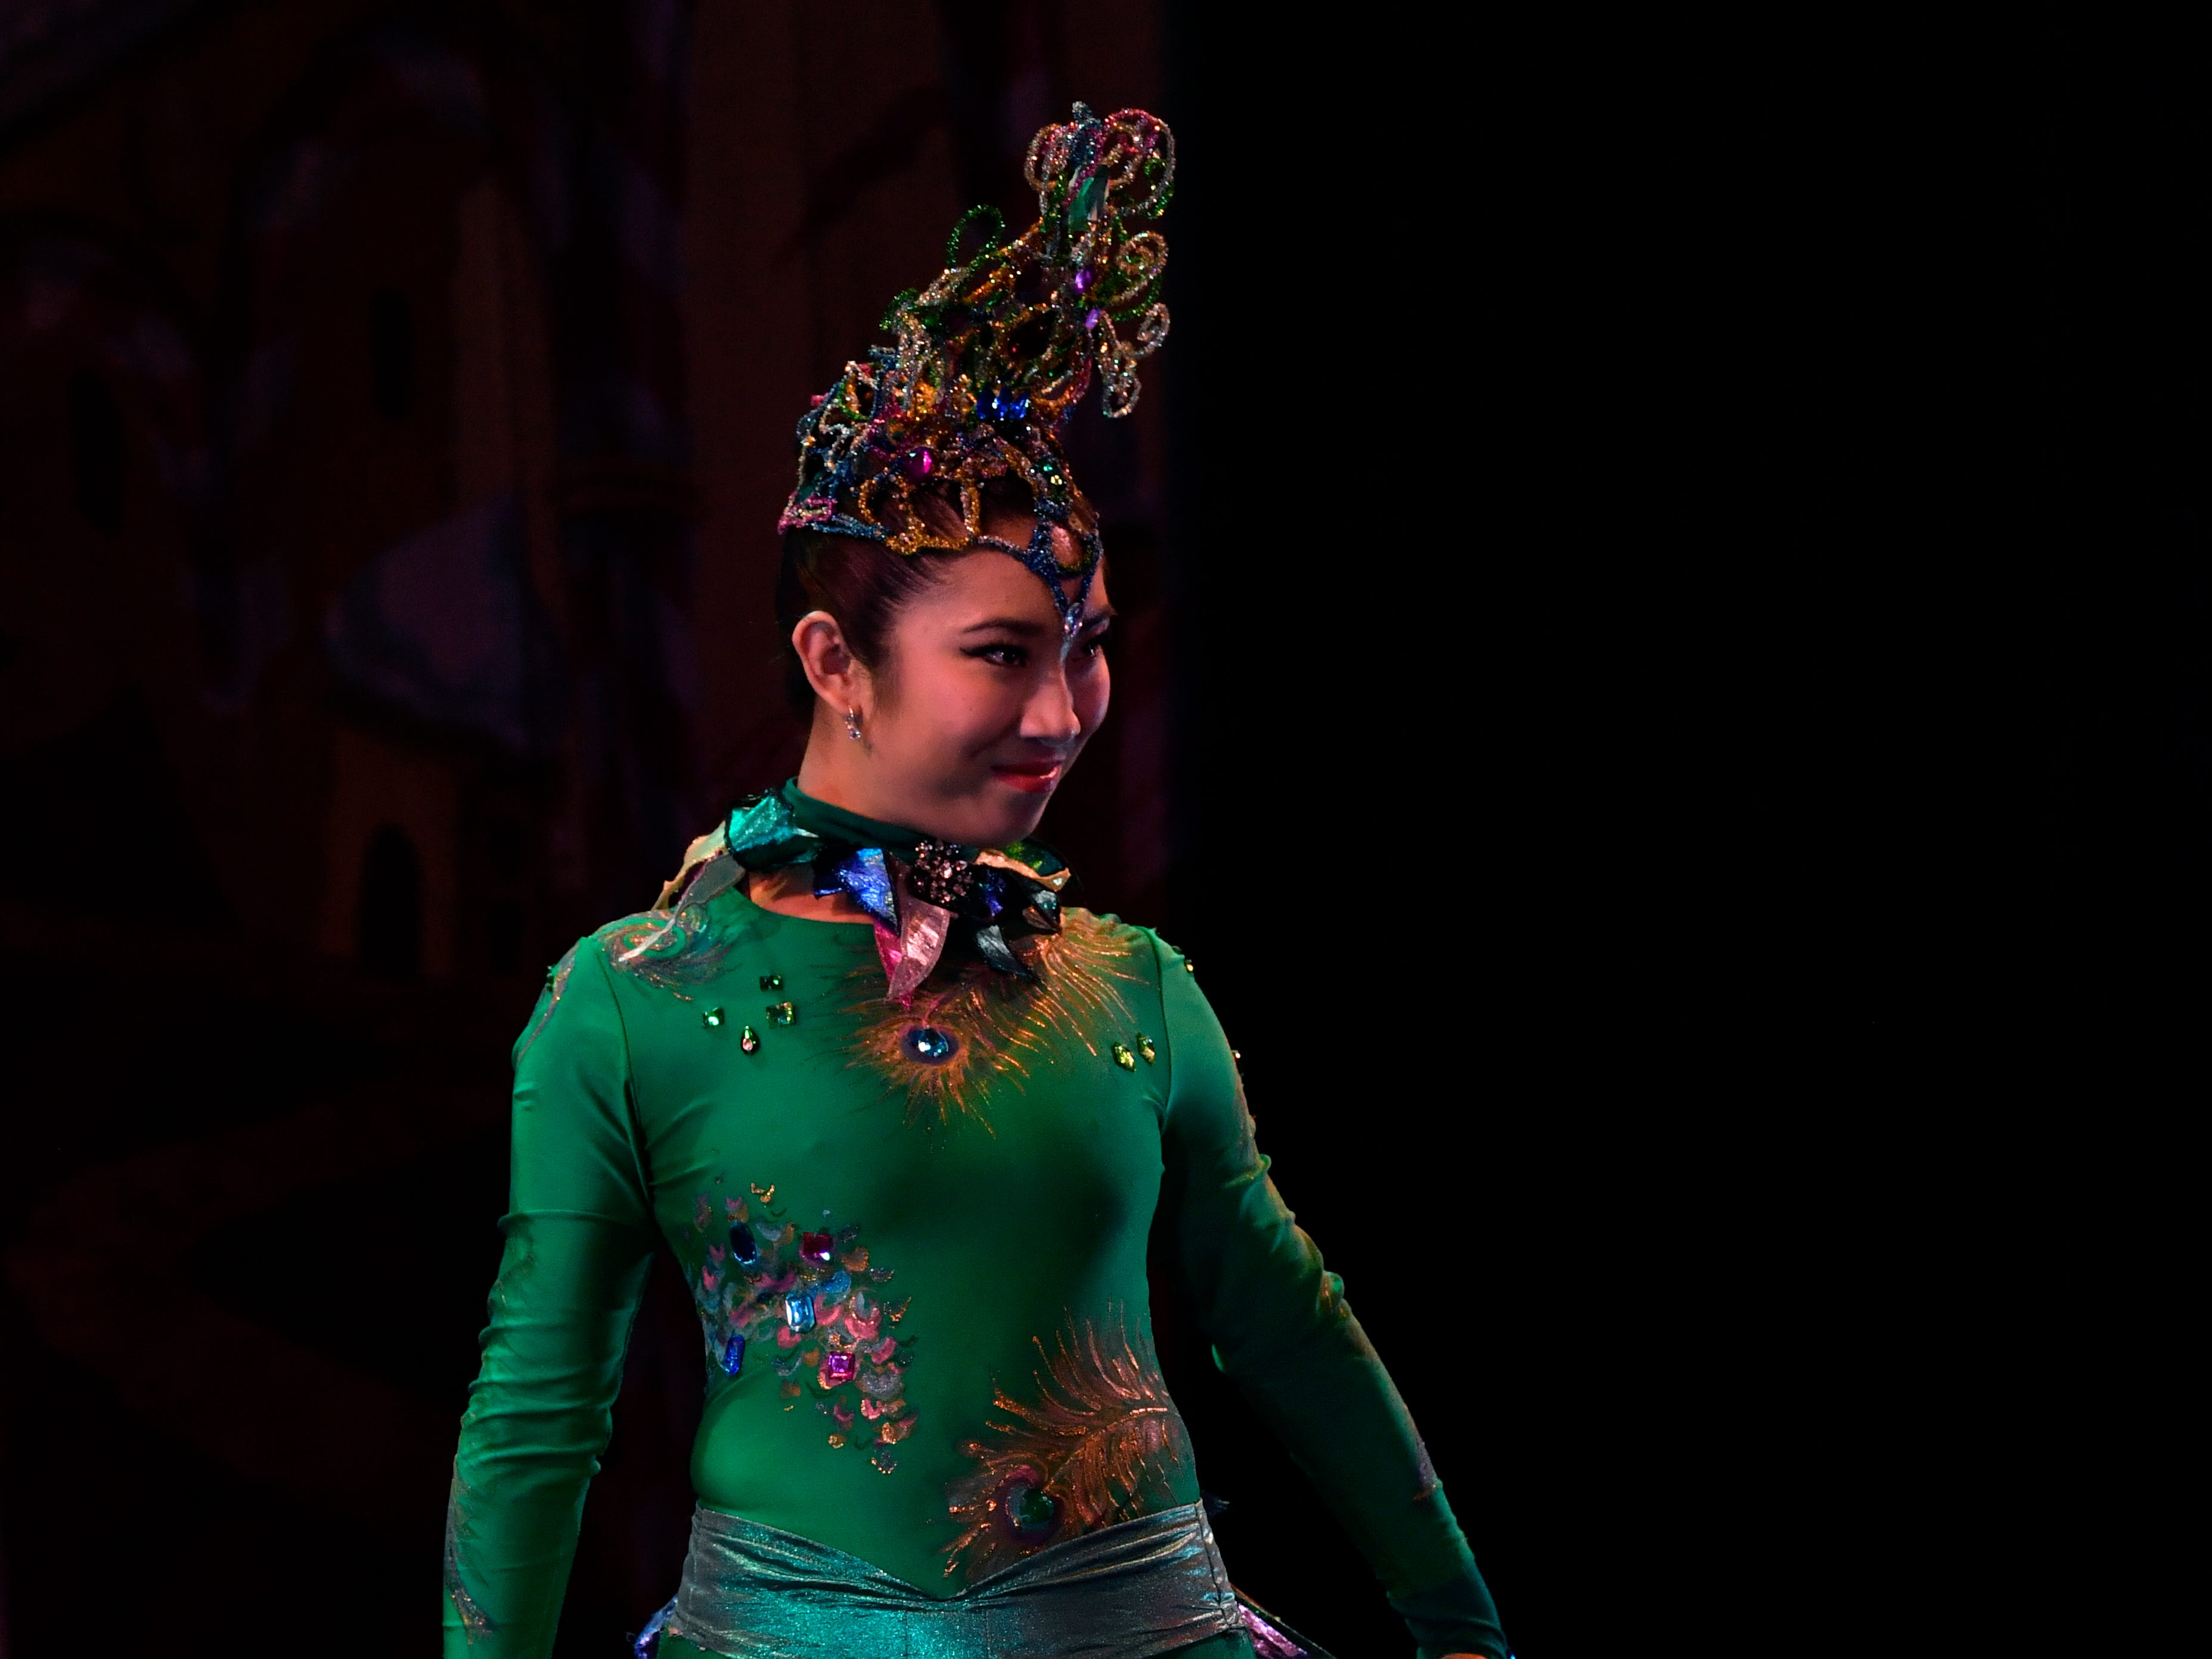 Maya Millar performs as the peacock during rehearsal Nov. 14, 2018 for The Nutcracker. This was the 31st year for the Abilene Ballet Theatre production, held at the Paramount Theatre.